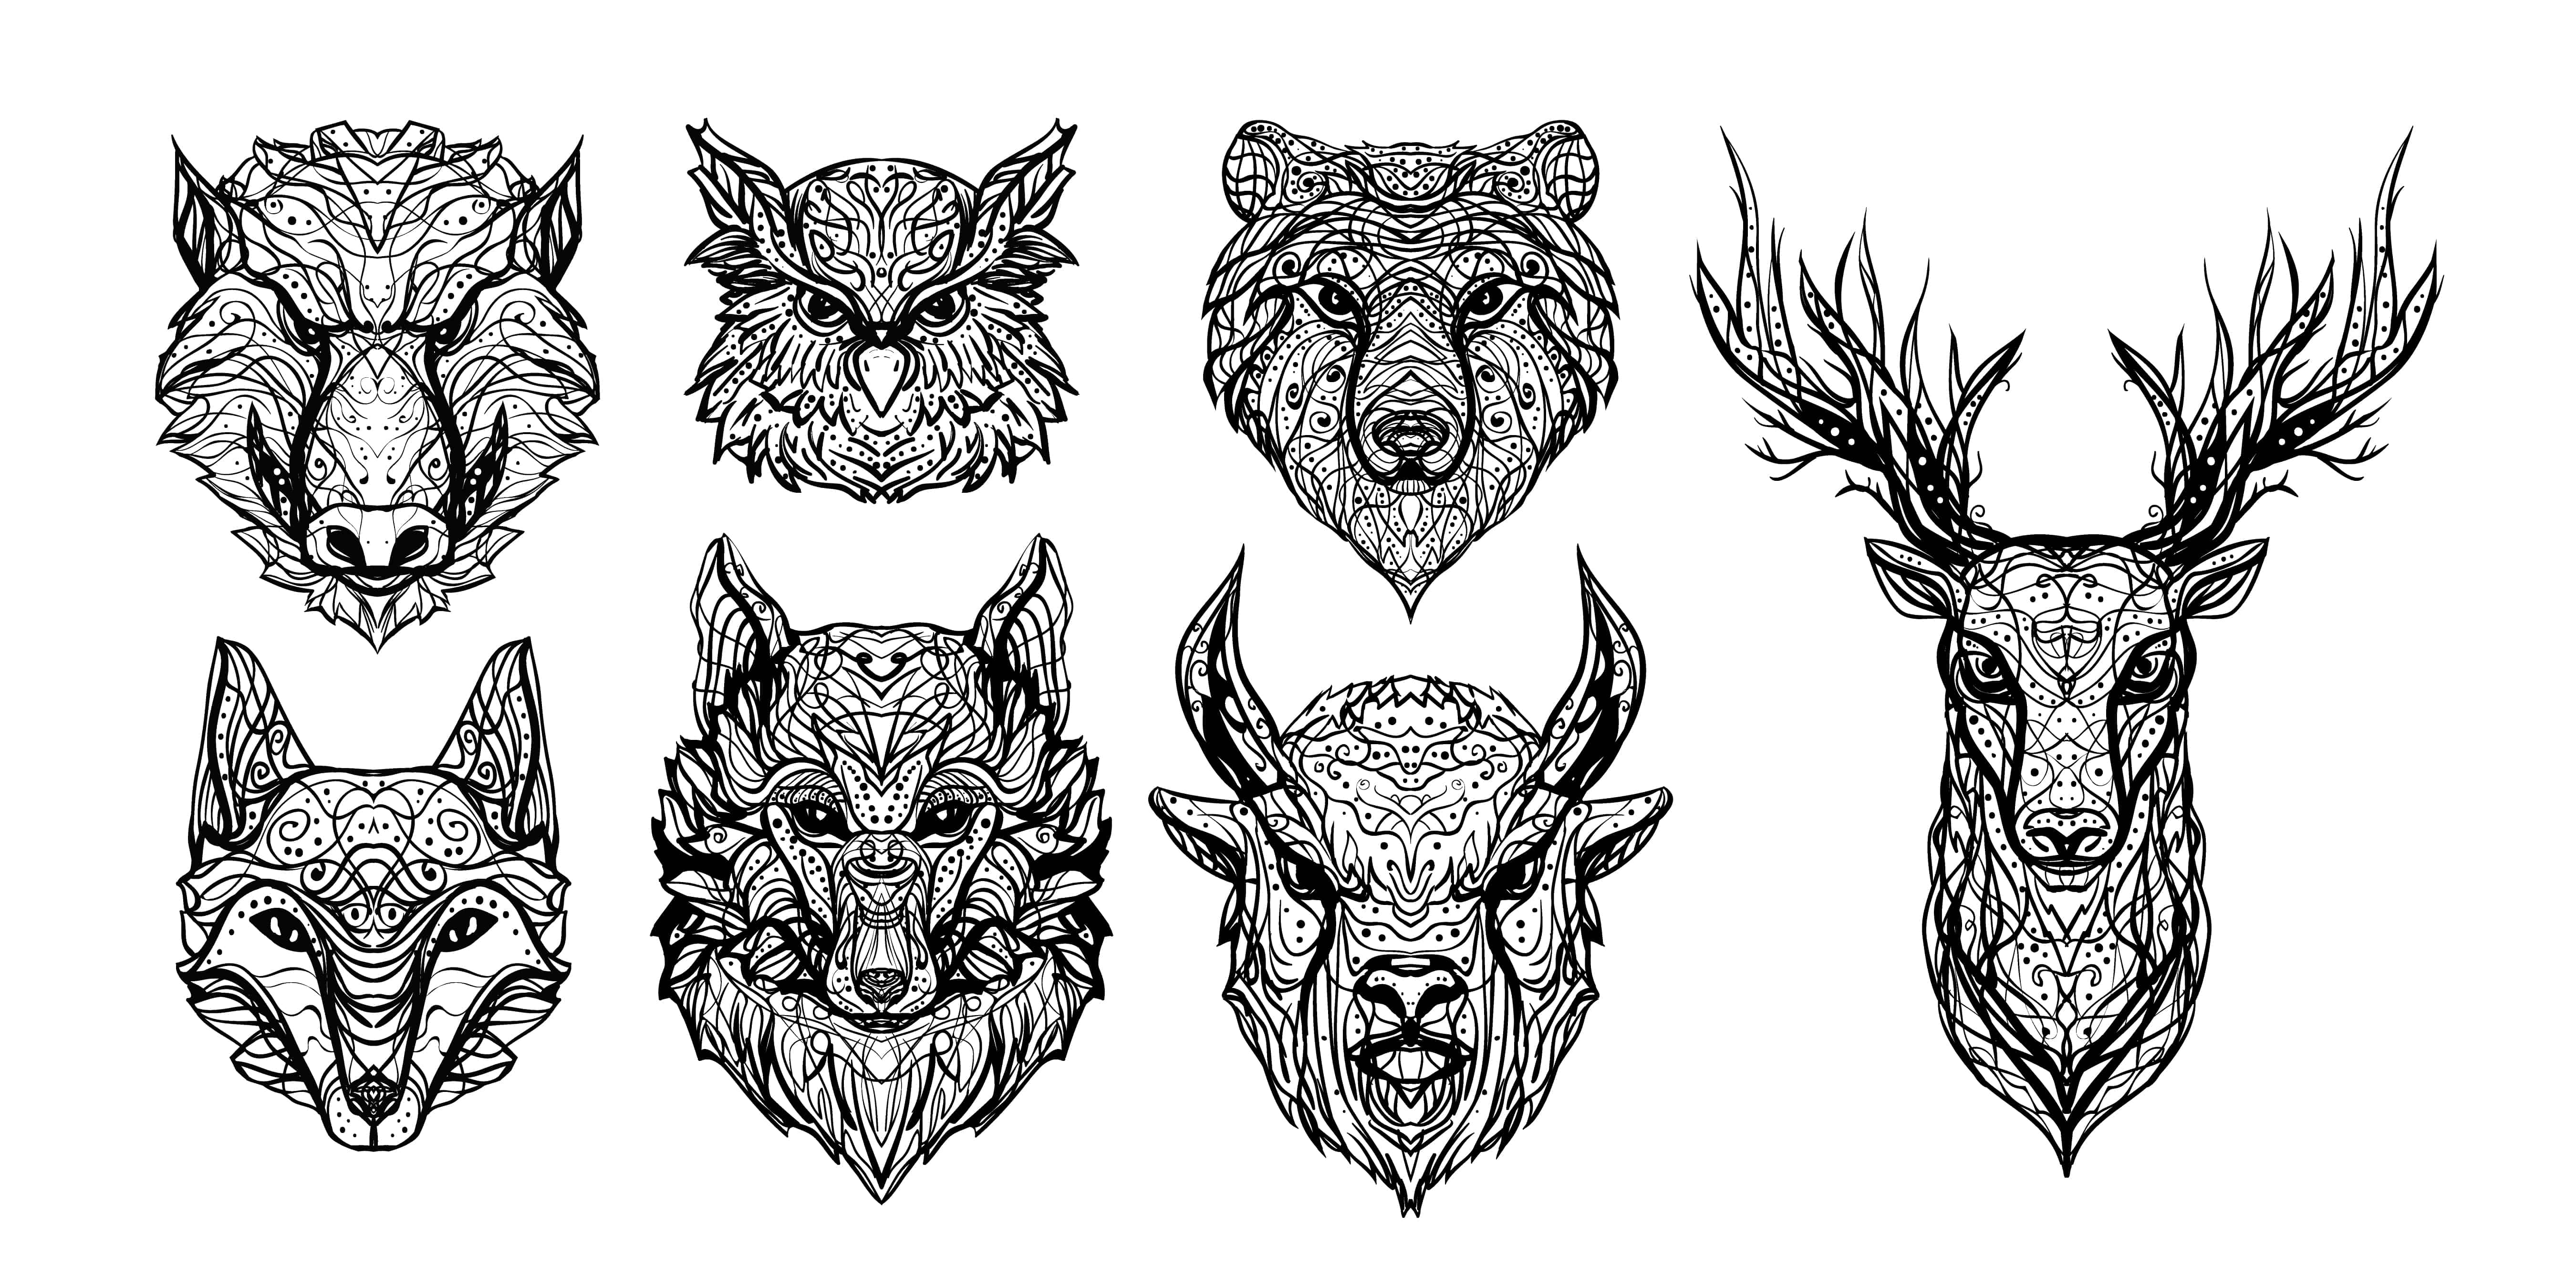 Awesome Animal Tattoos For Guys Ideas And Motifs Bad Habits Tattoos